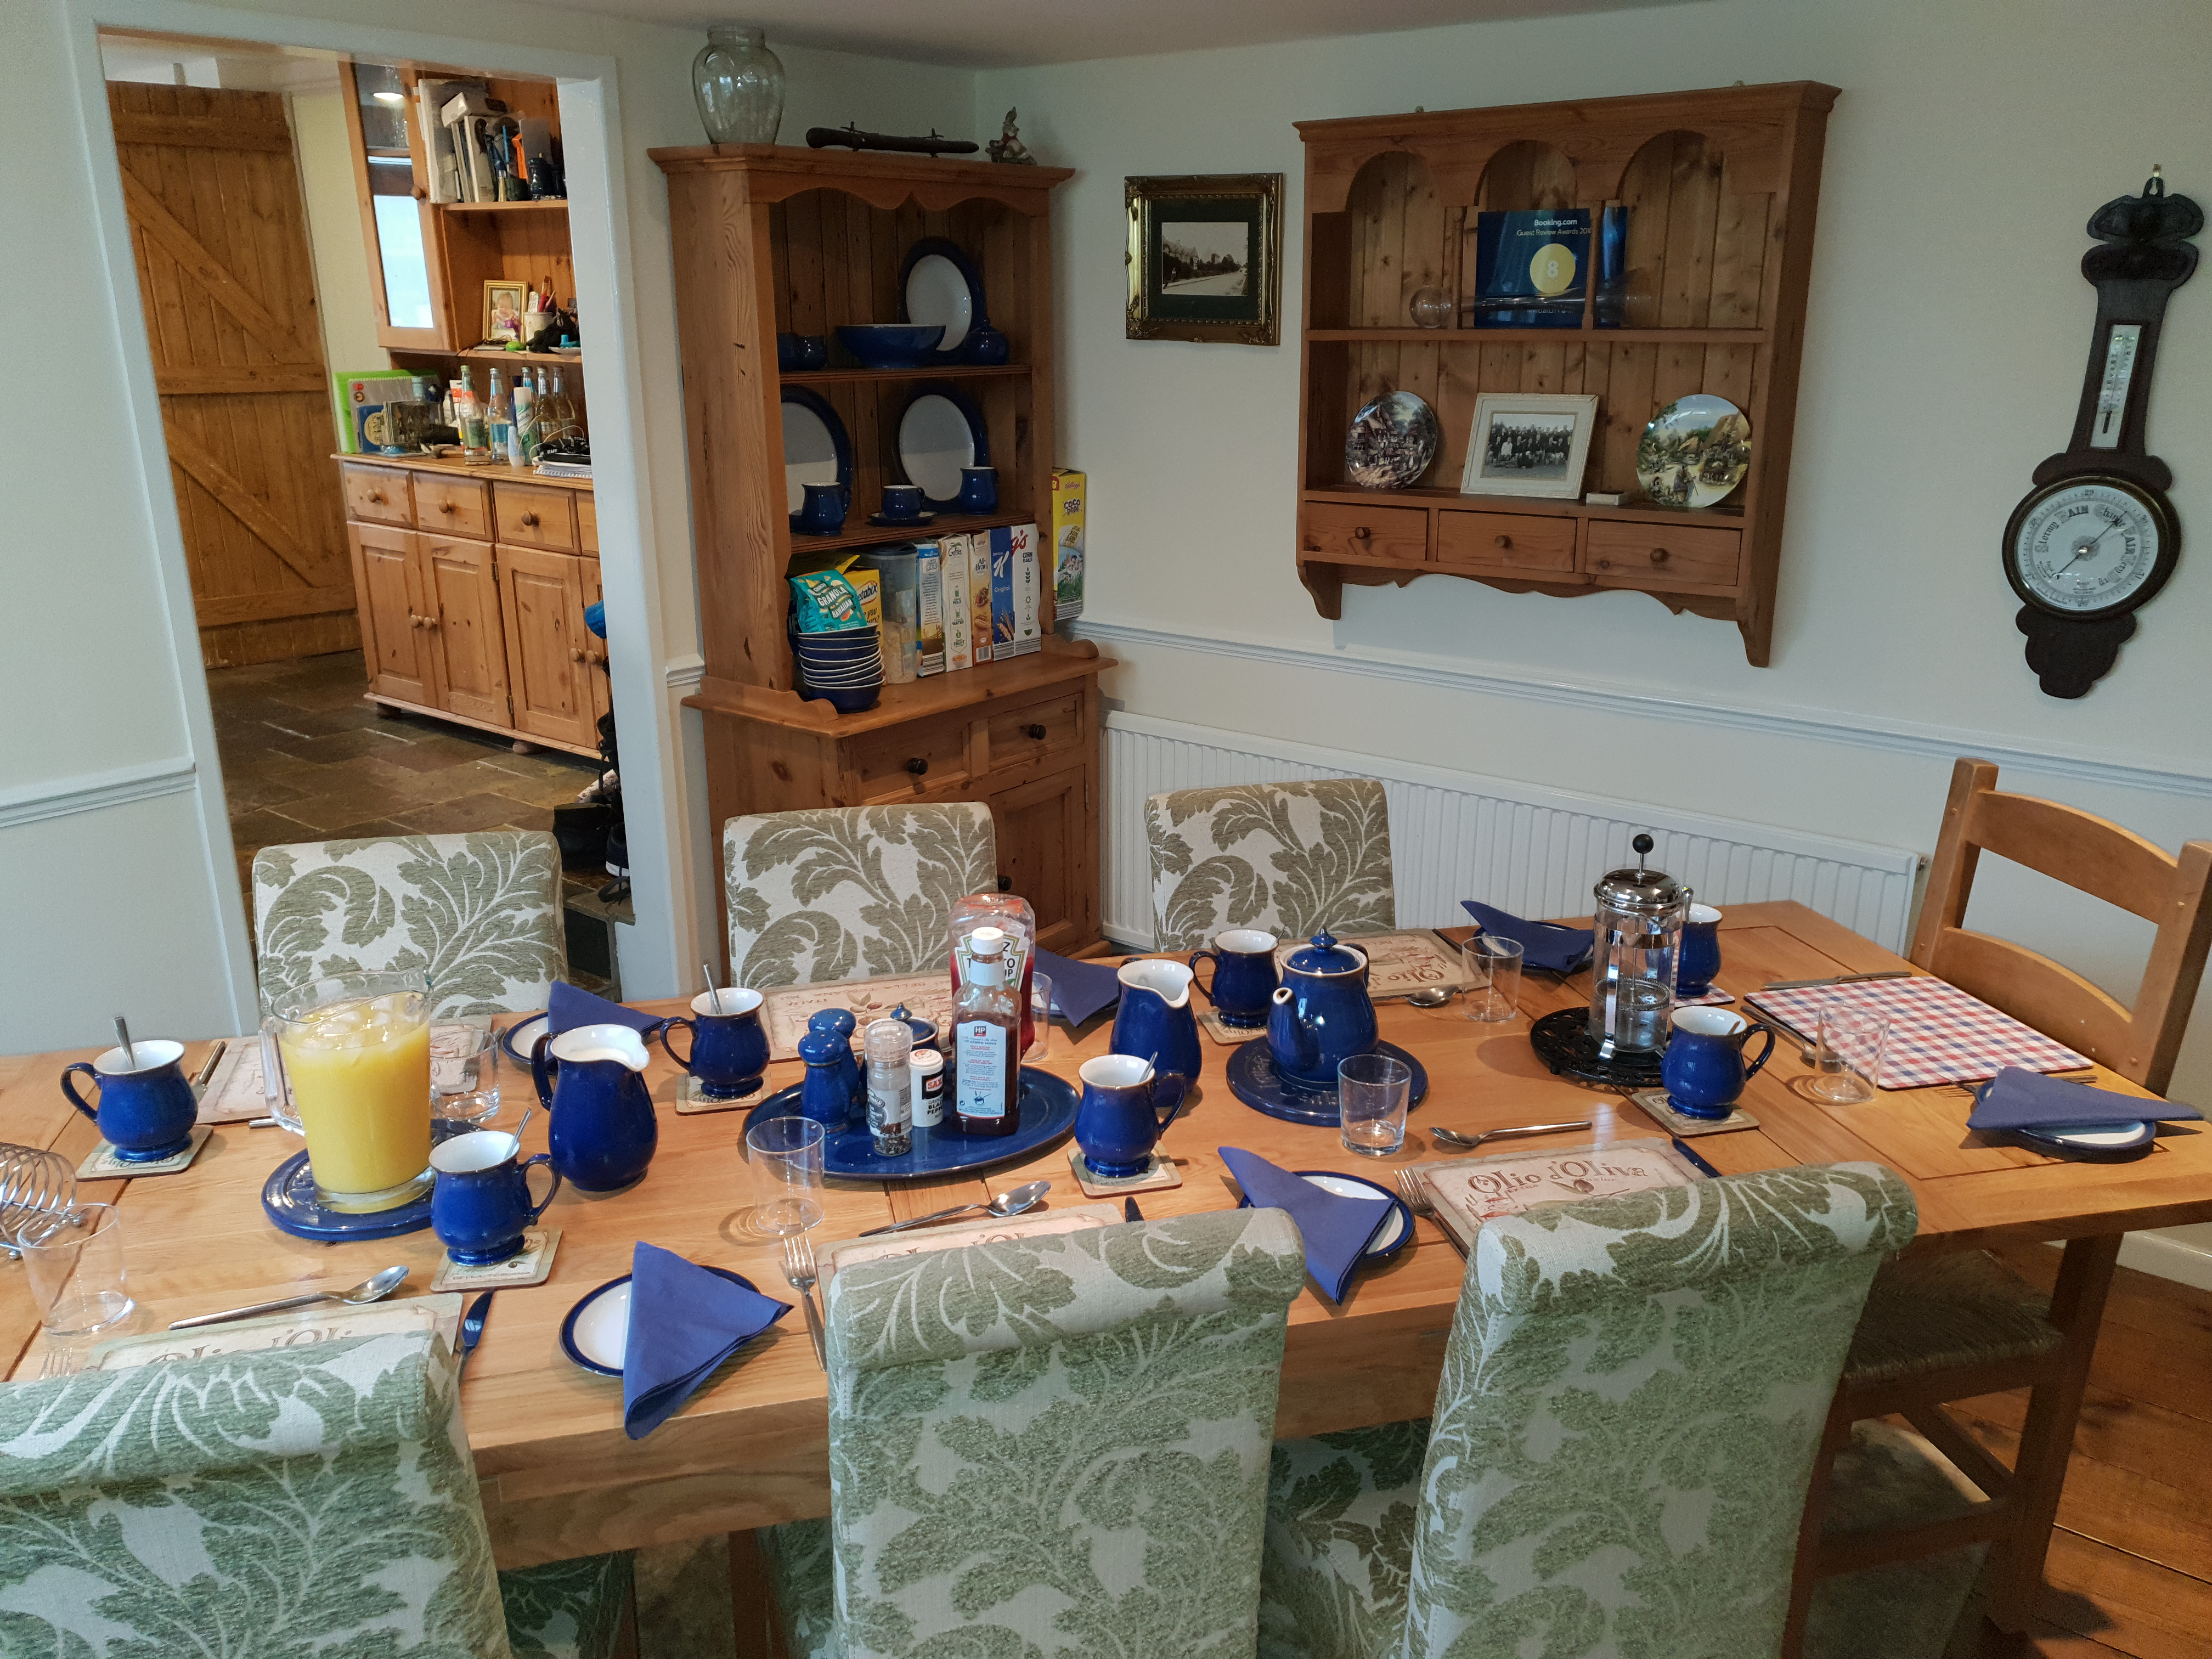 Milbatch Farm B&B breaksfast table, Mear